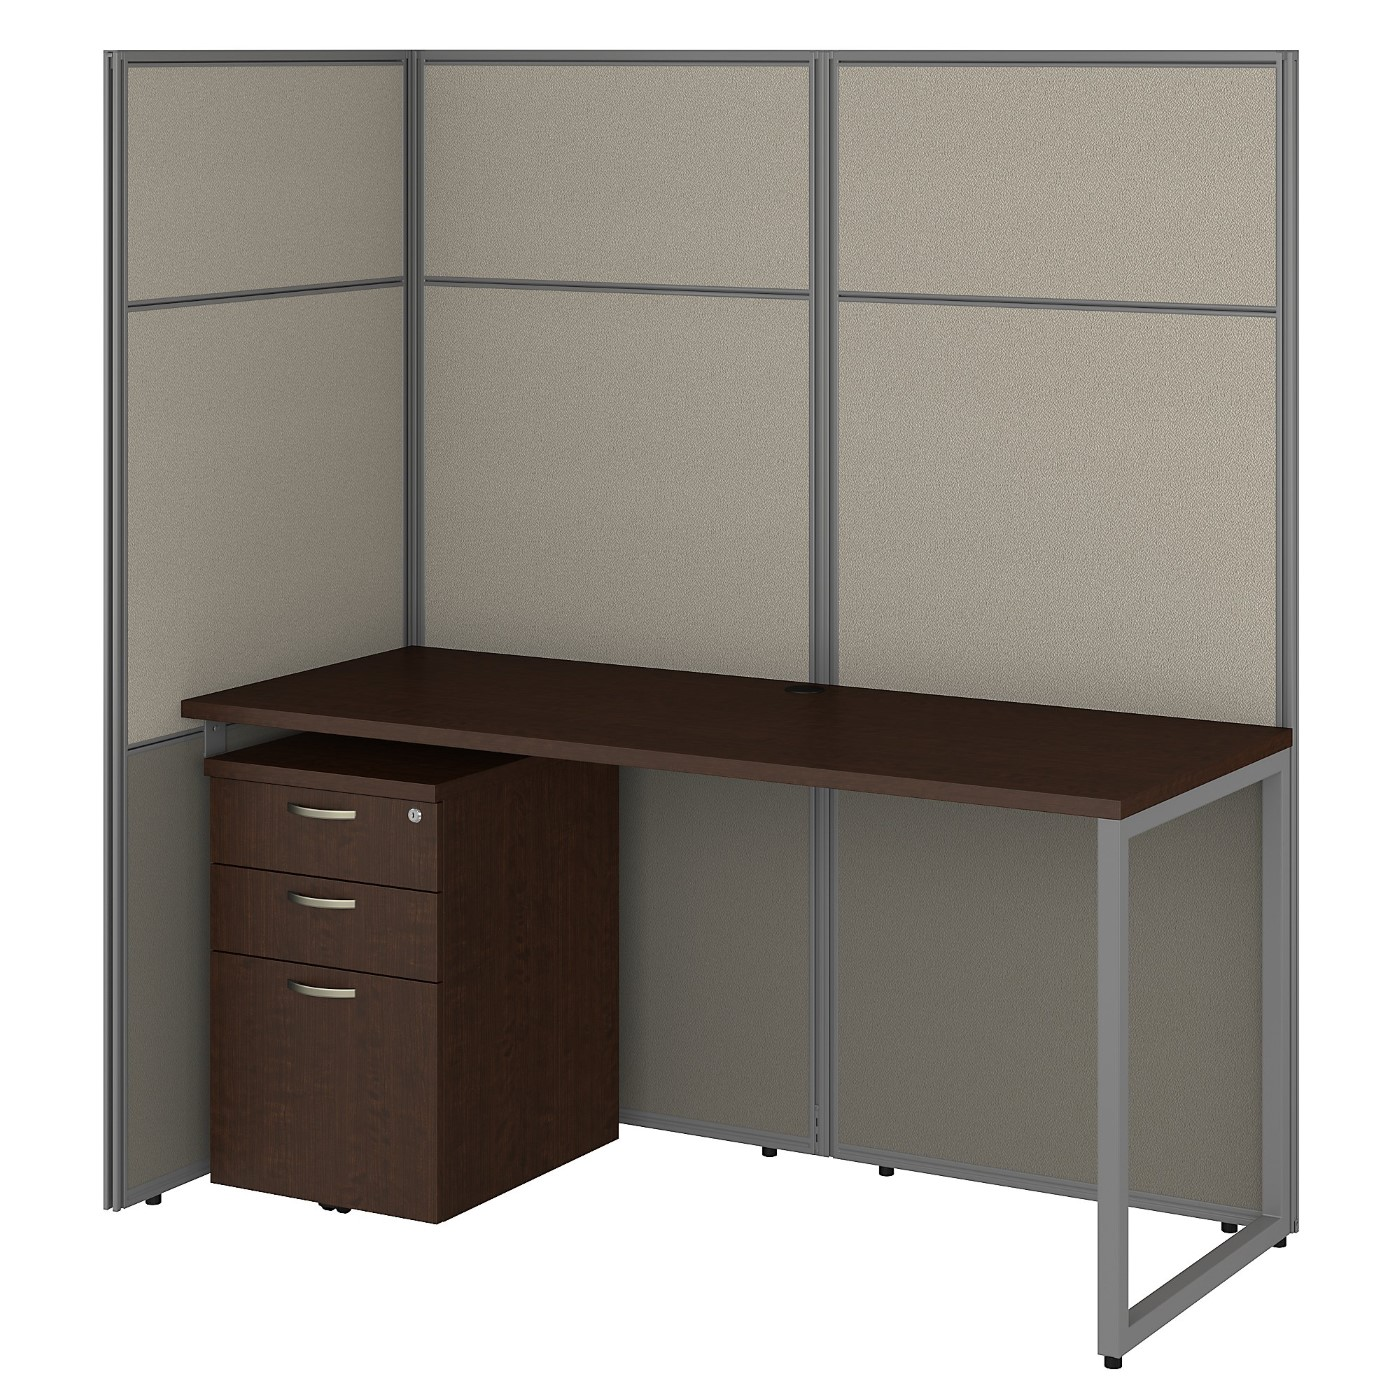 BUSH BUSINESS FURNITURE EASY OFFICE 60W CUBICLE DESK WITH FILE CABINET AND 66H OPEN PANELS WORKSTATION. FREE SHIPPING 30H x 72L x 72W.  SALE DEDUCT 10% MORE ENTER '10percent' IN COUPON CODE BOX WHILE CHECKING OUT. ENDS 5-31-20.